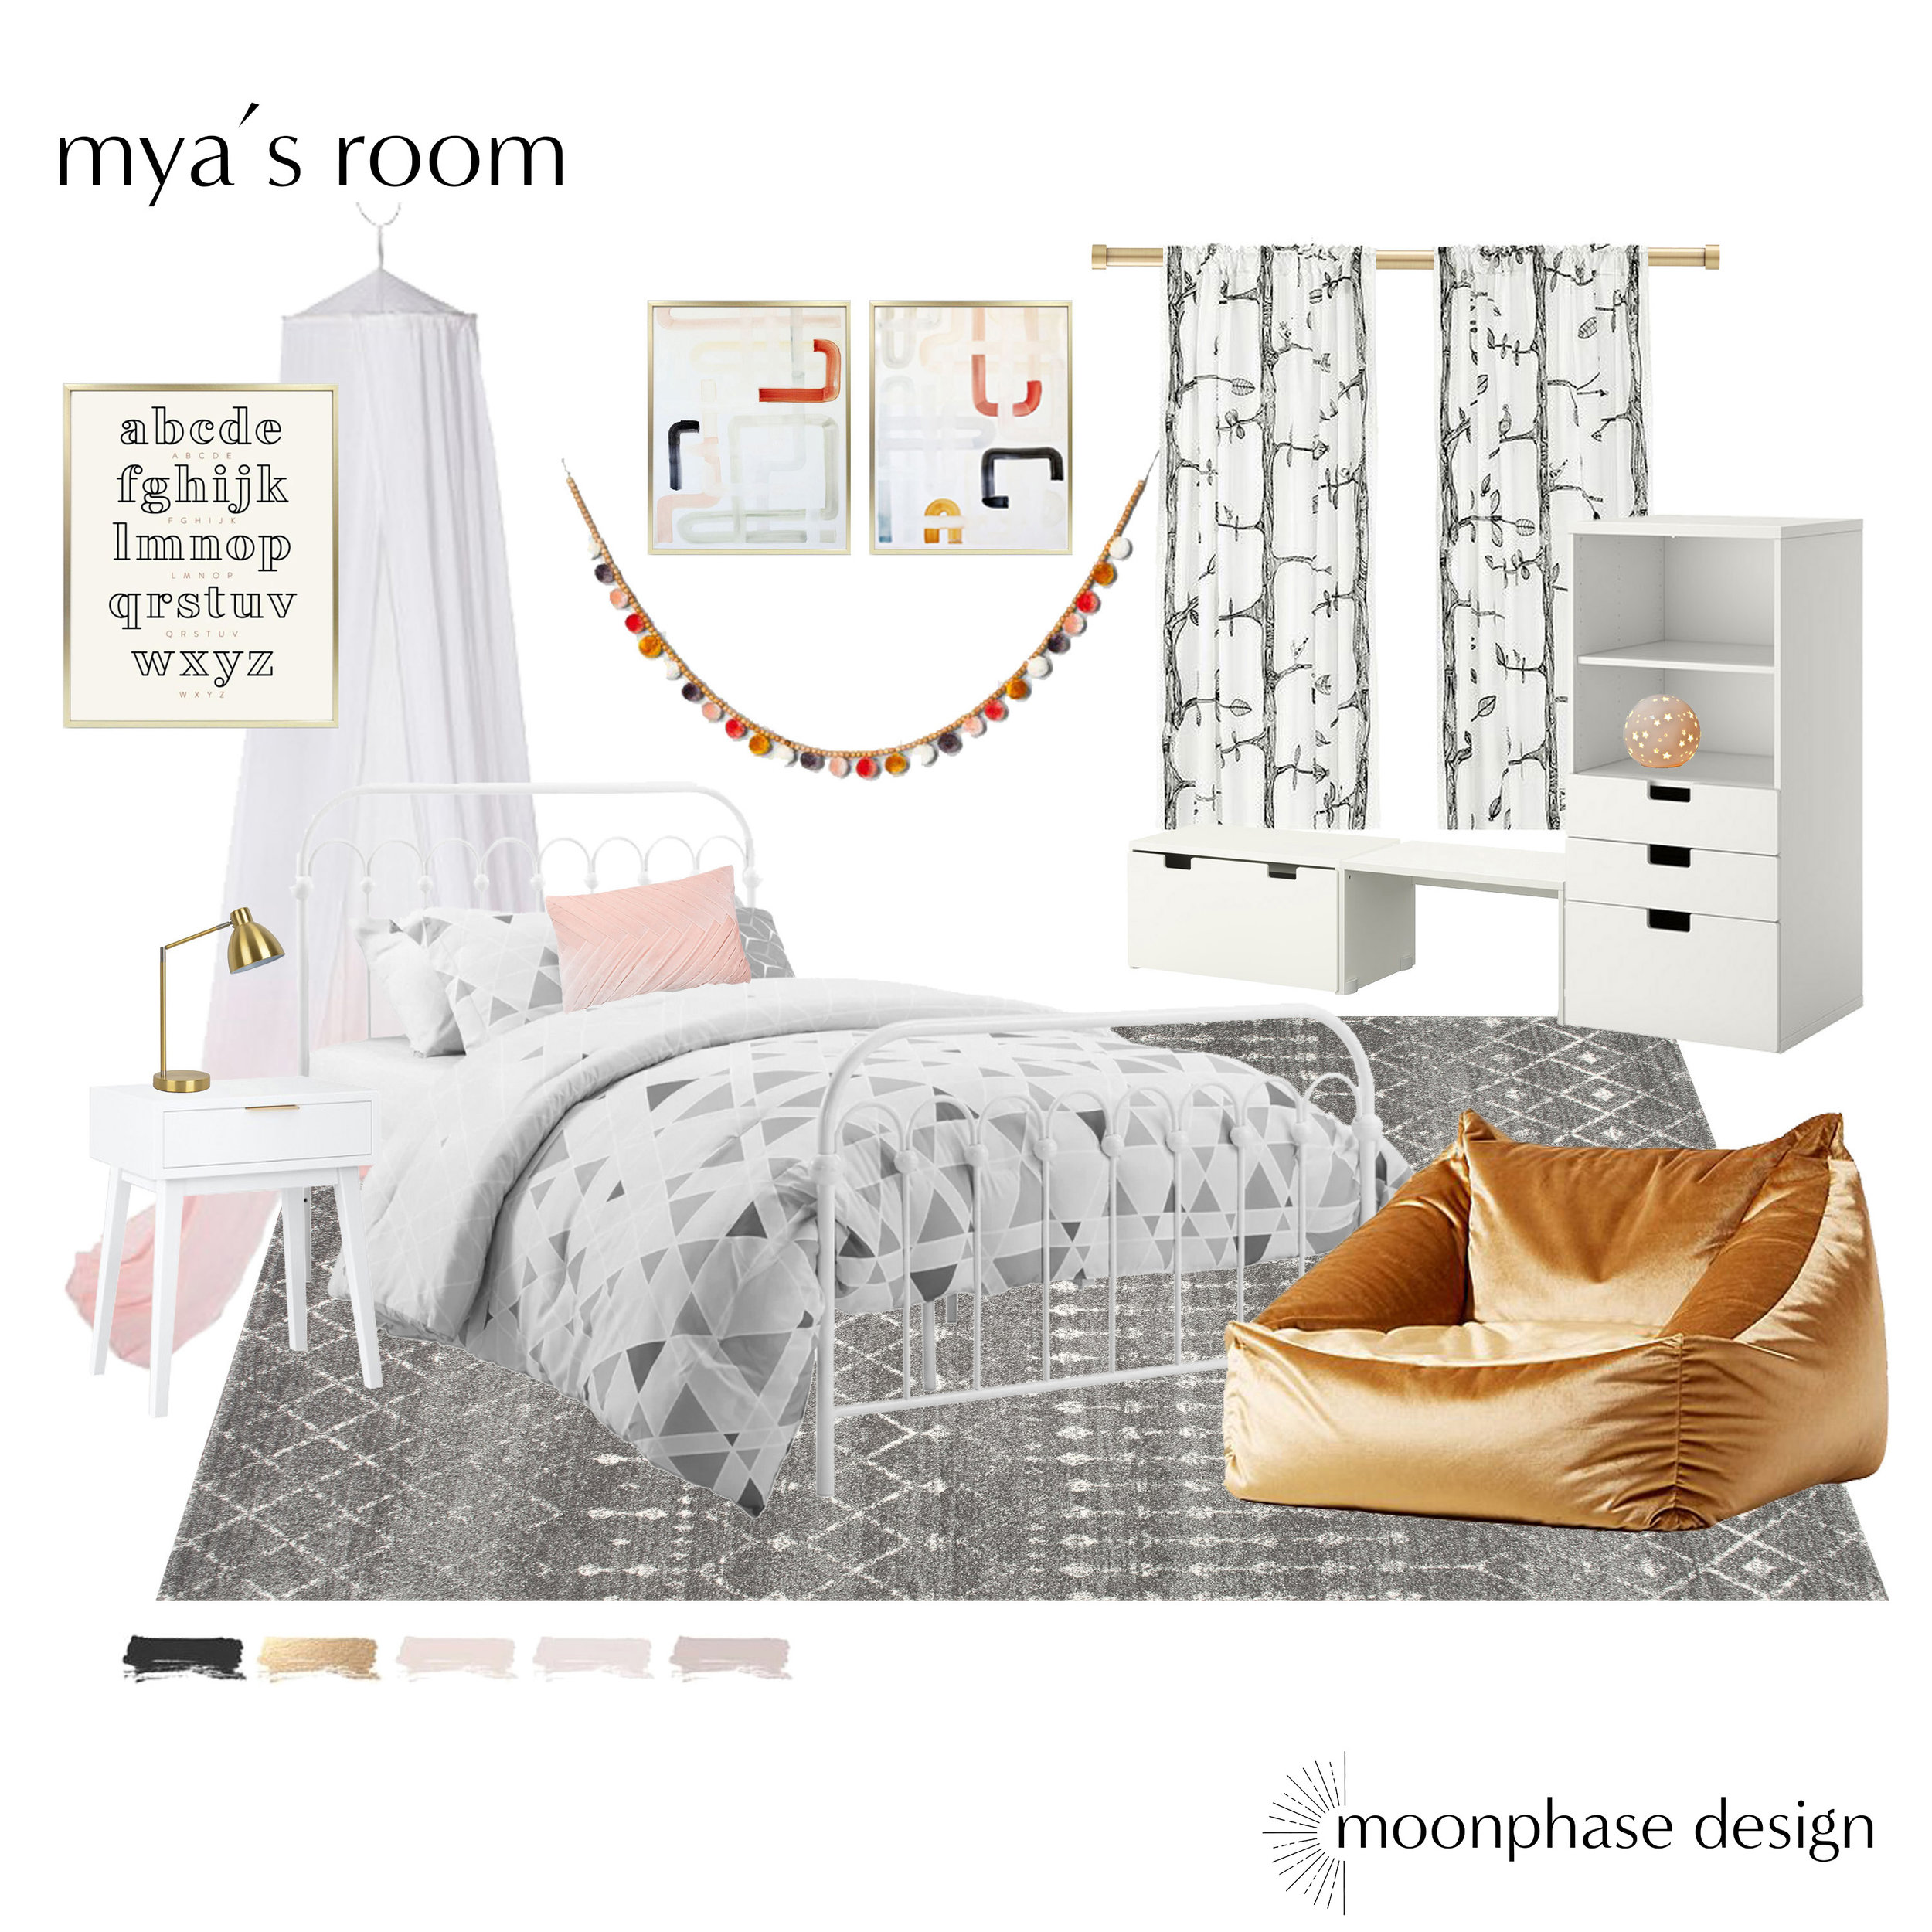 Moodboard Mya Bedroom.jpg